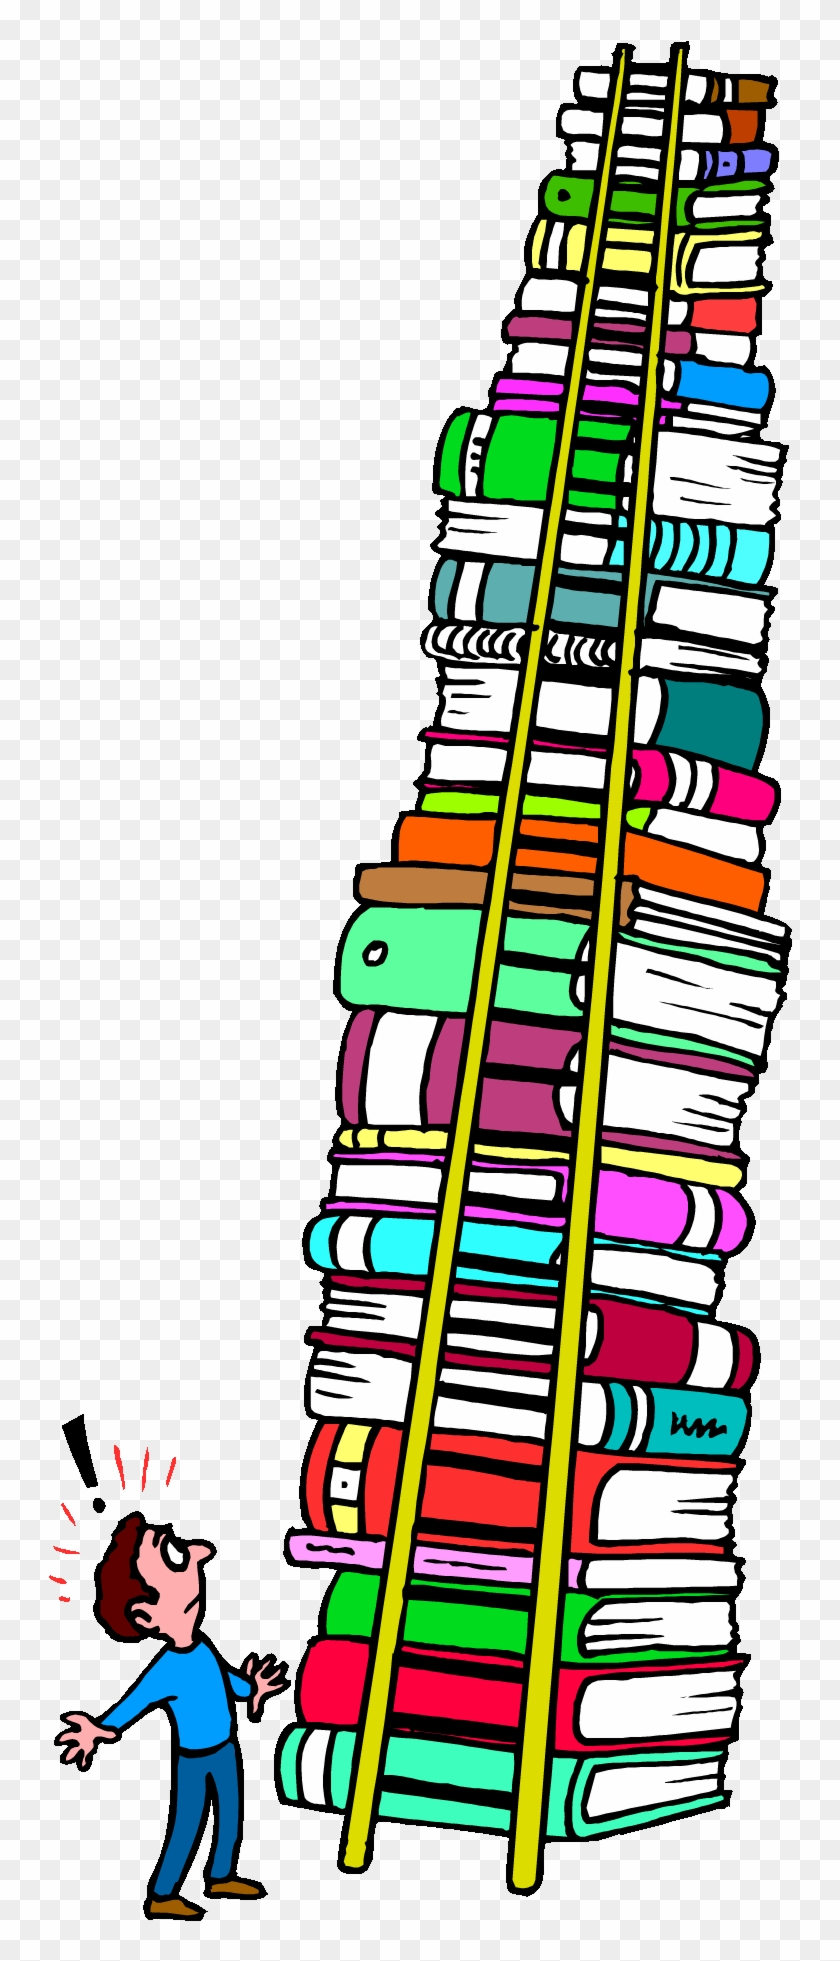 bobook clipart tall stack - tall stack of books clipart - free